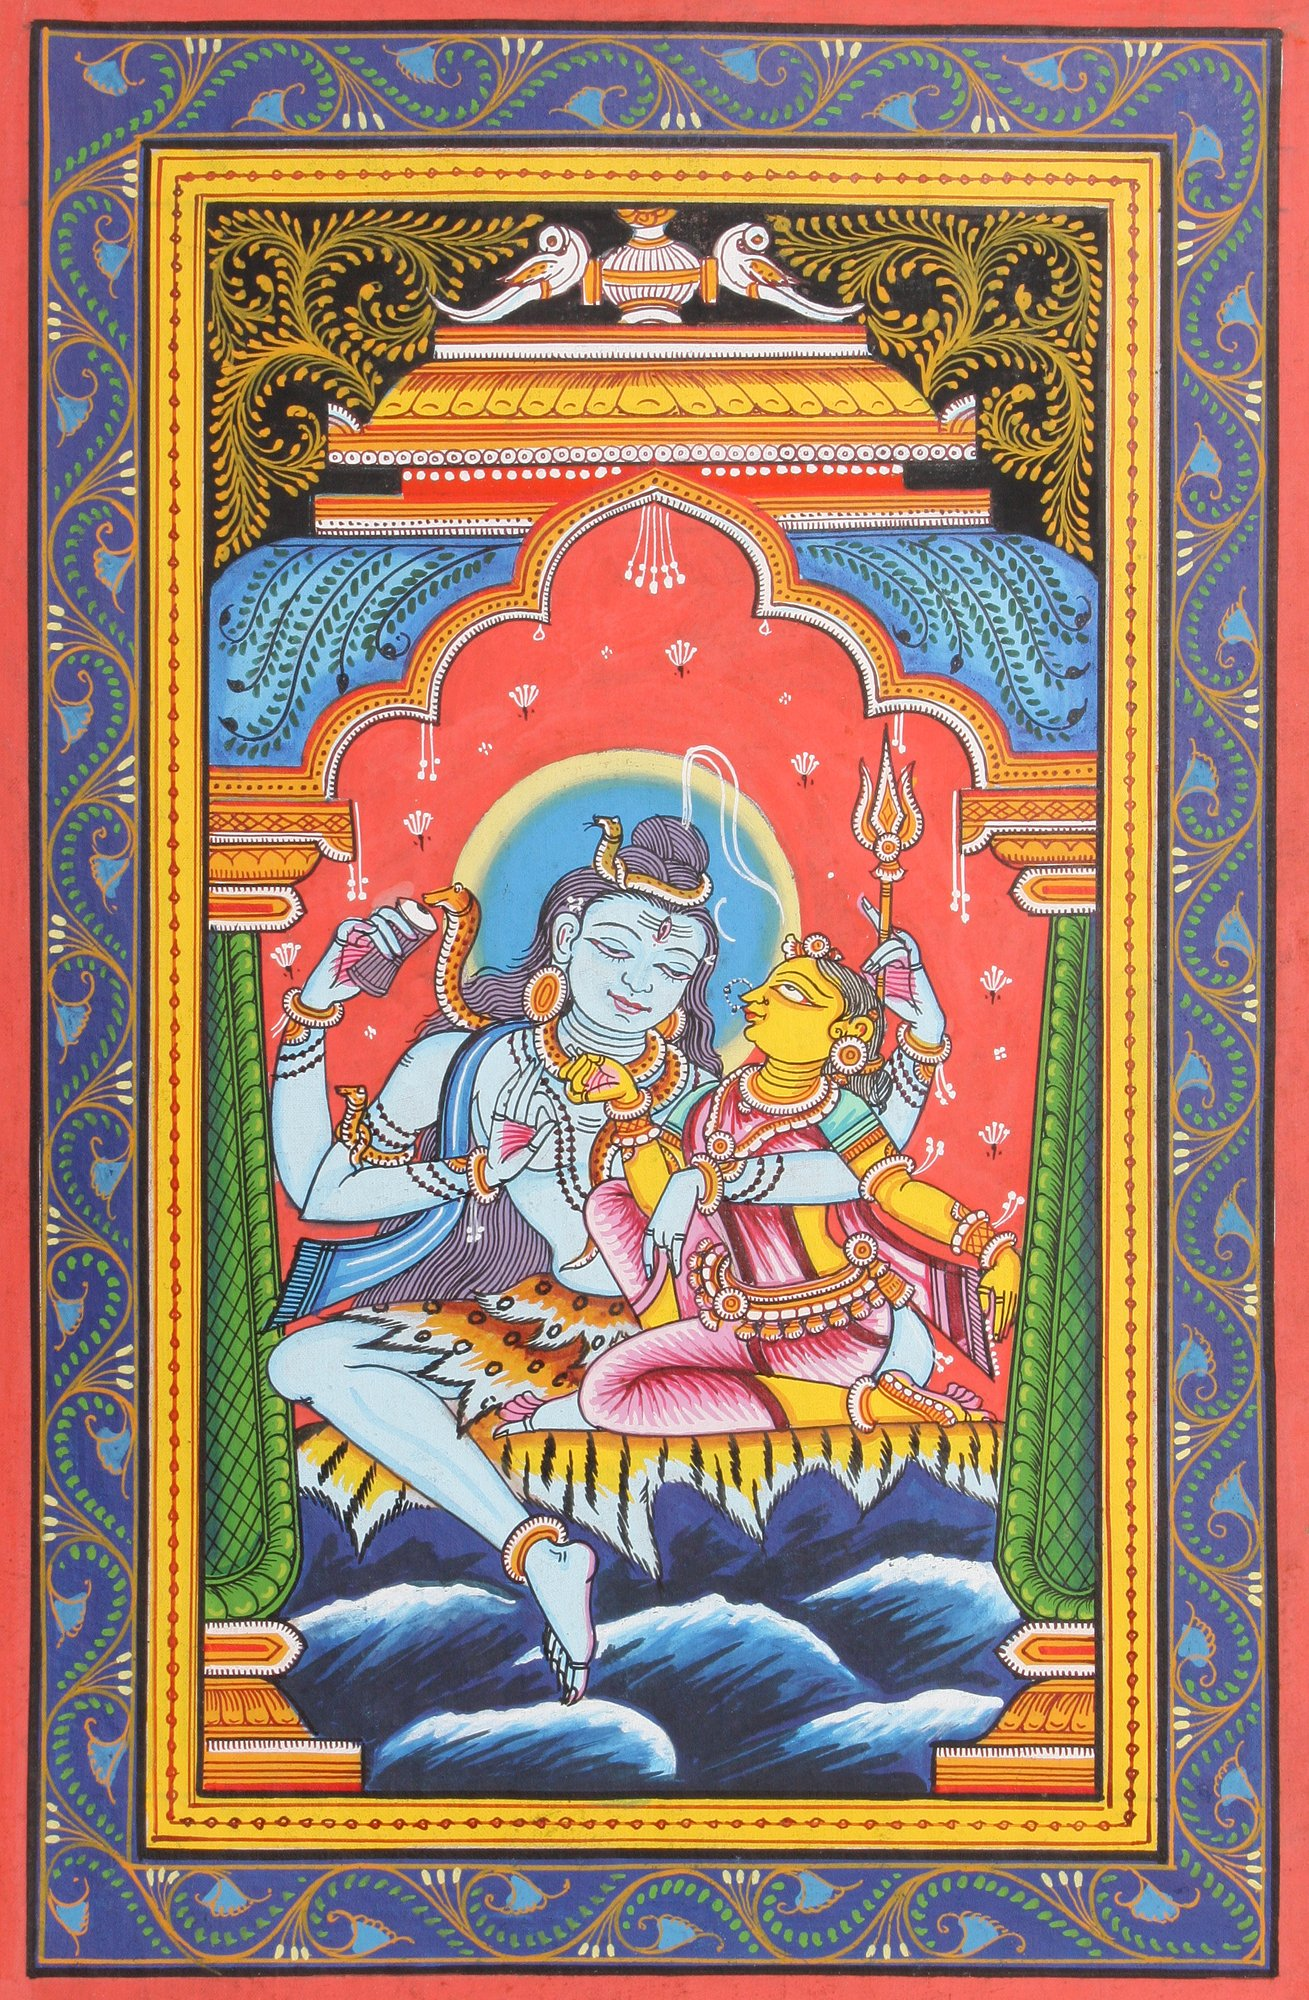 Parvati in the Lap of Shiva - Watercolor on Patti - Artist Rabi Behera by Exotic India (Image #1)